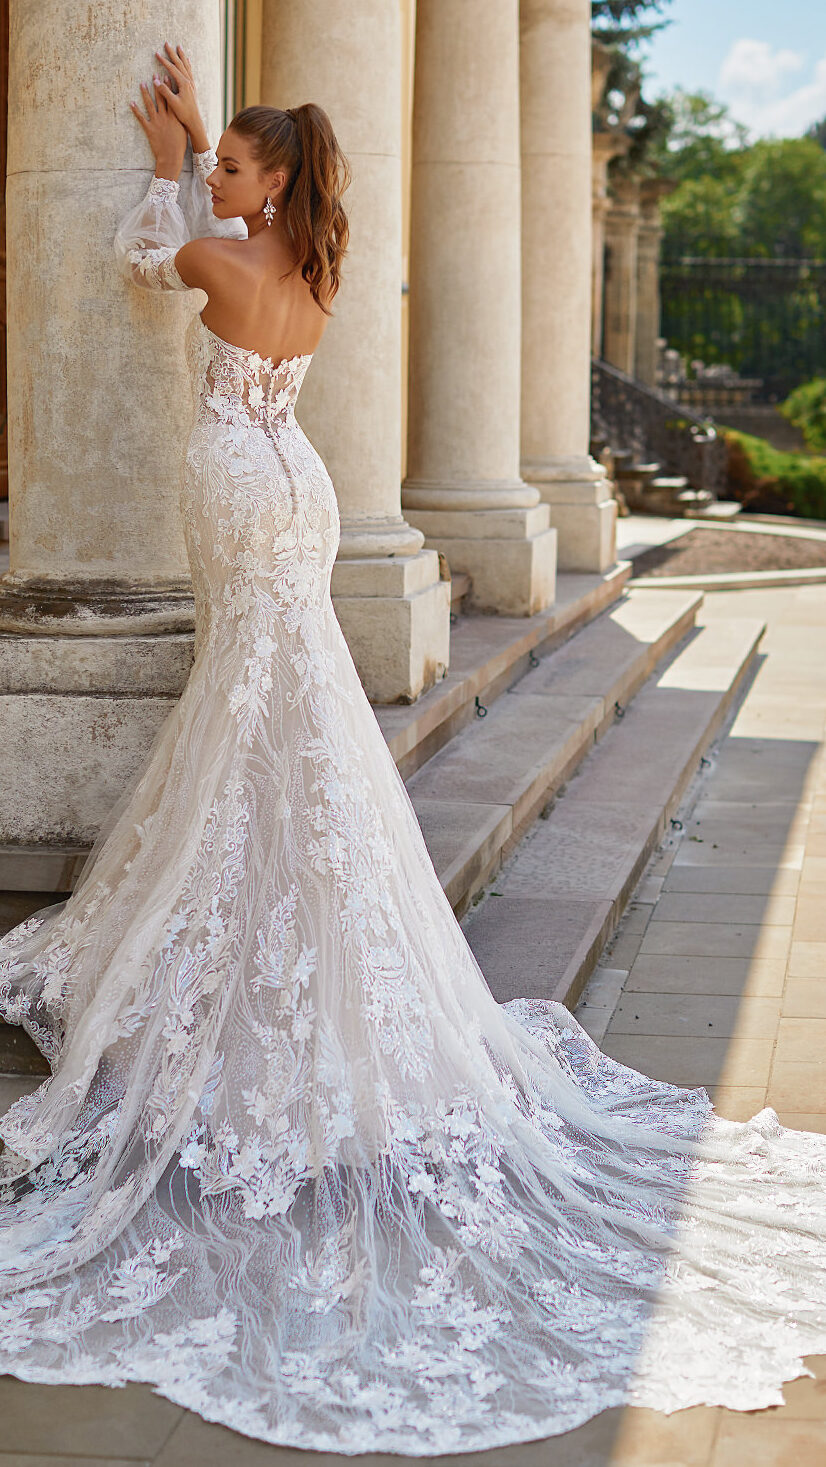 Designer Wedding Dresses by Moonlight Couture 2022 Bridal Collection - H1490